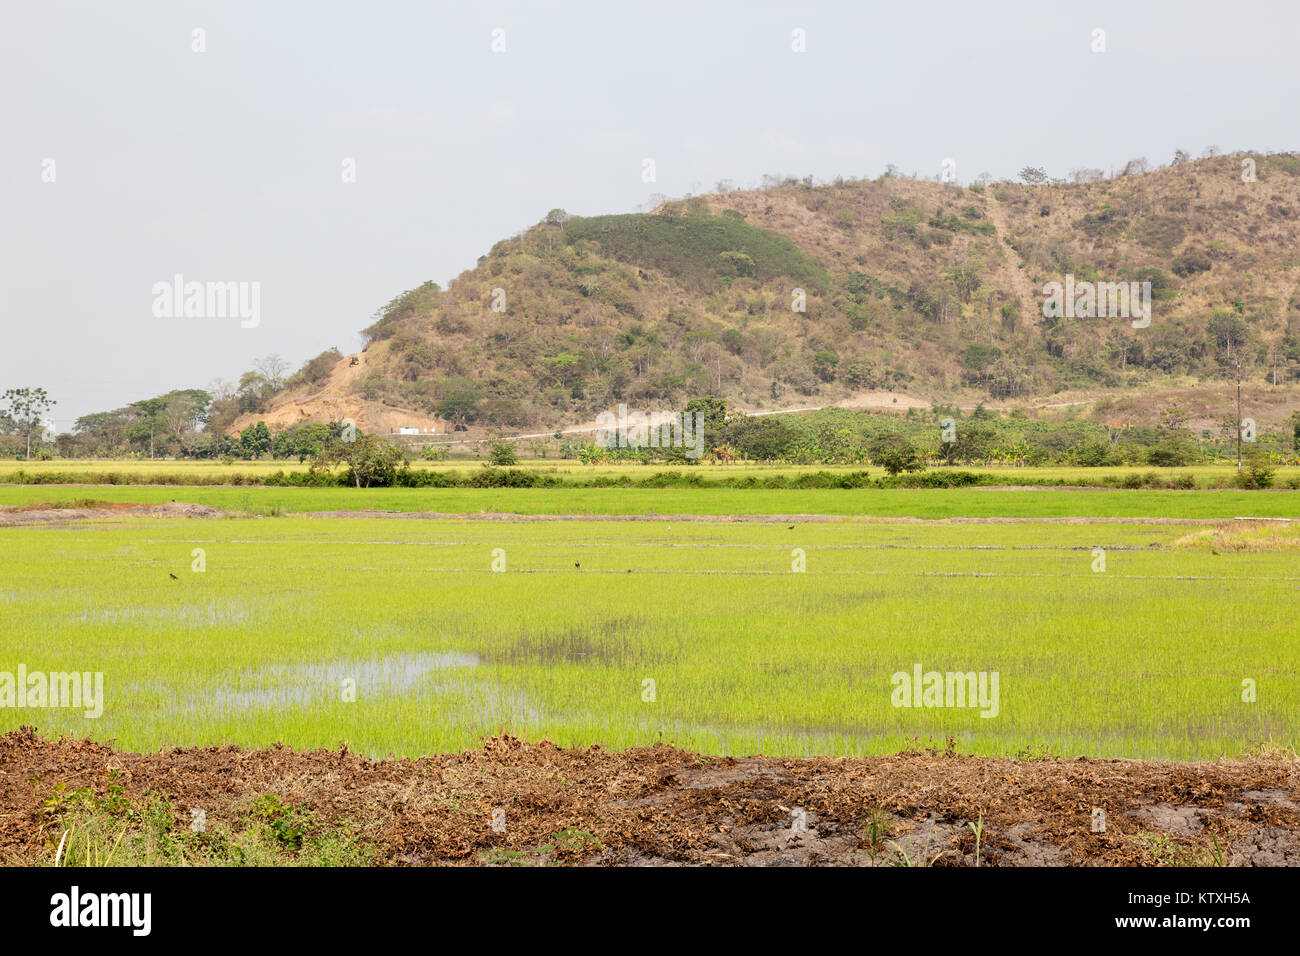 Ecuador South America - Rice fields or rice paddy fields near the coast at Guayaquil, Ecuador, South America - Stock Image